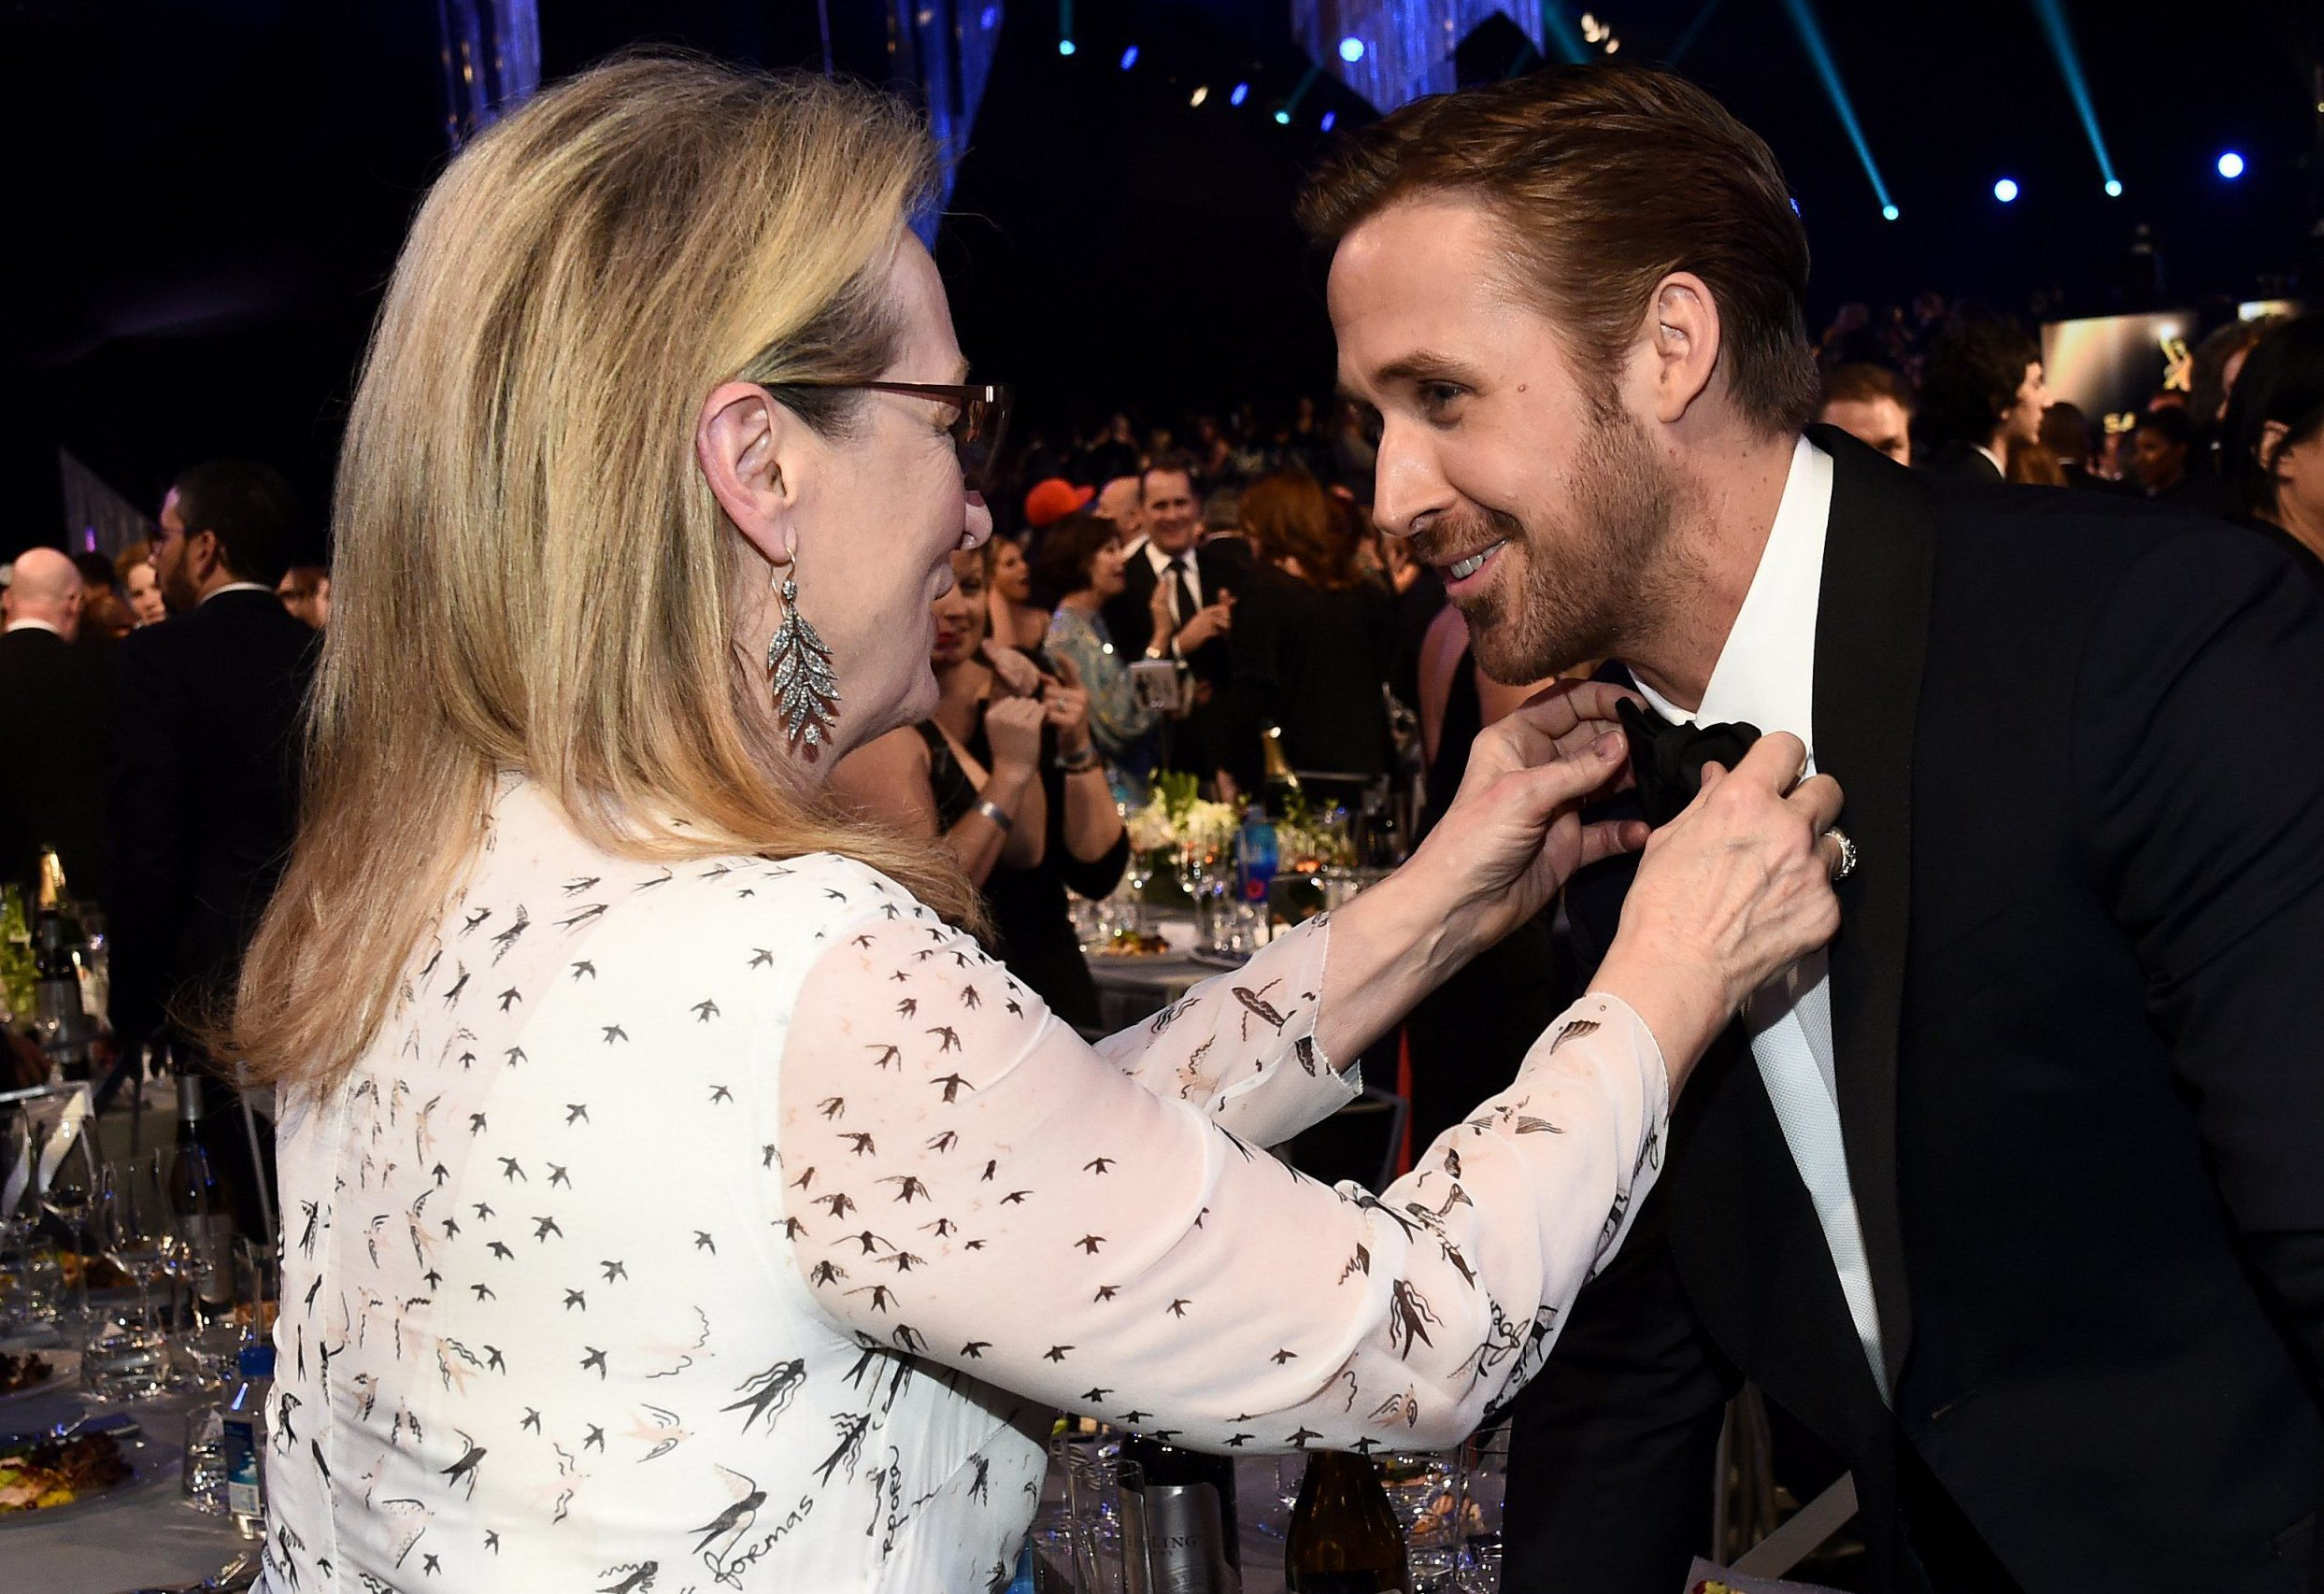 Mandatory Credit: Photo by Buckner/Variety/REX/Shutterstock (8137132ca) Meryl Streep and Ryan Gosling The 23rd Annual Screen Actors Guild Awards, Cocktail Party, Los Angeles, USA - 29 Jan 2017